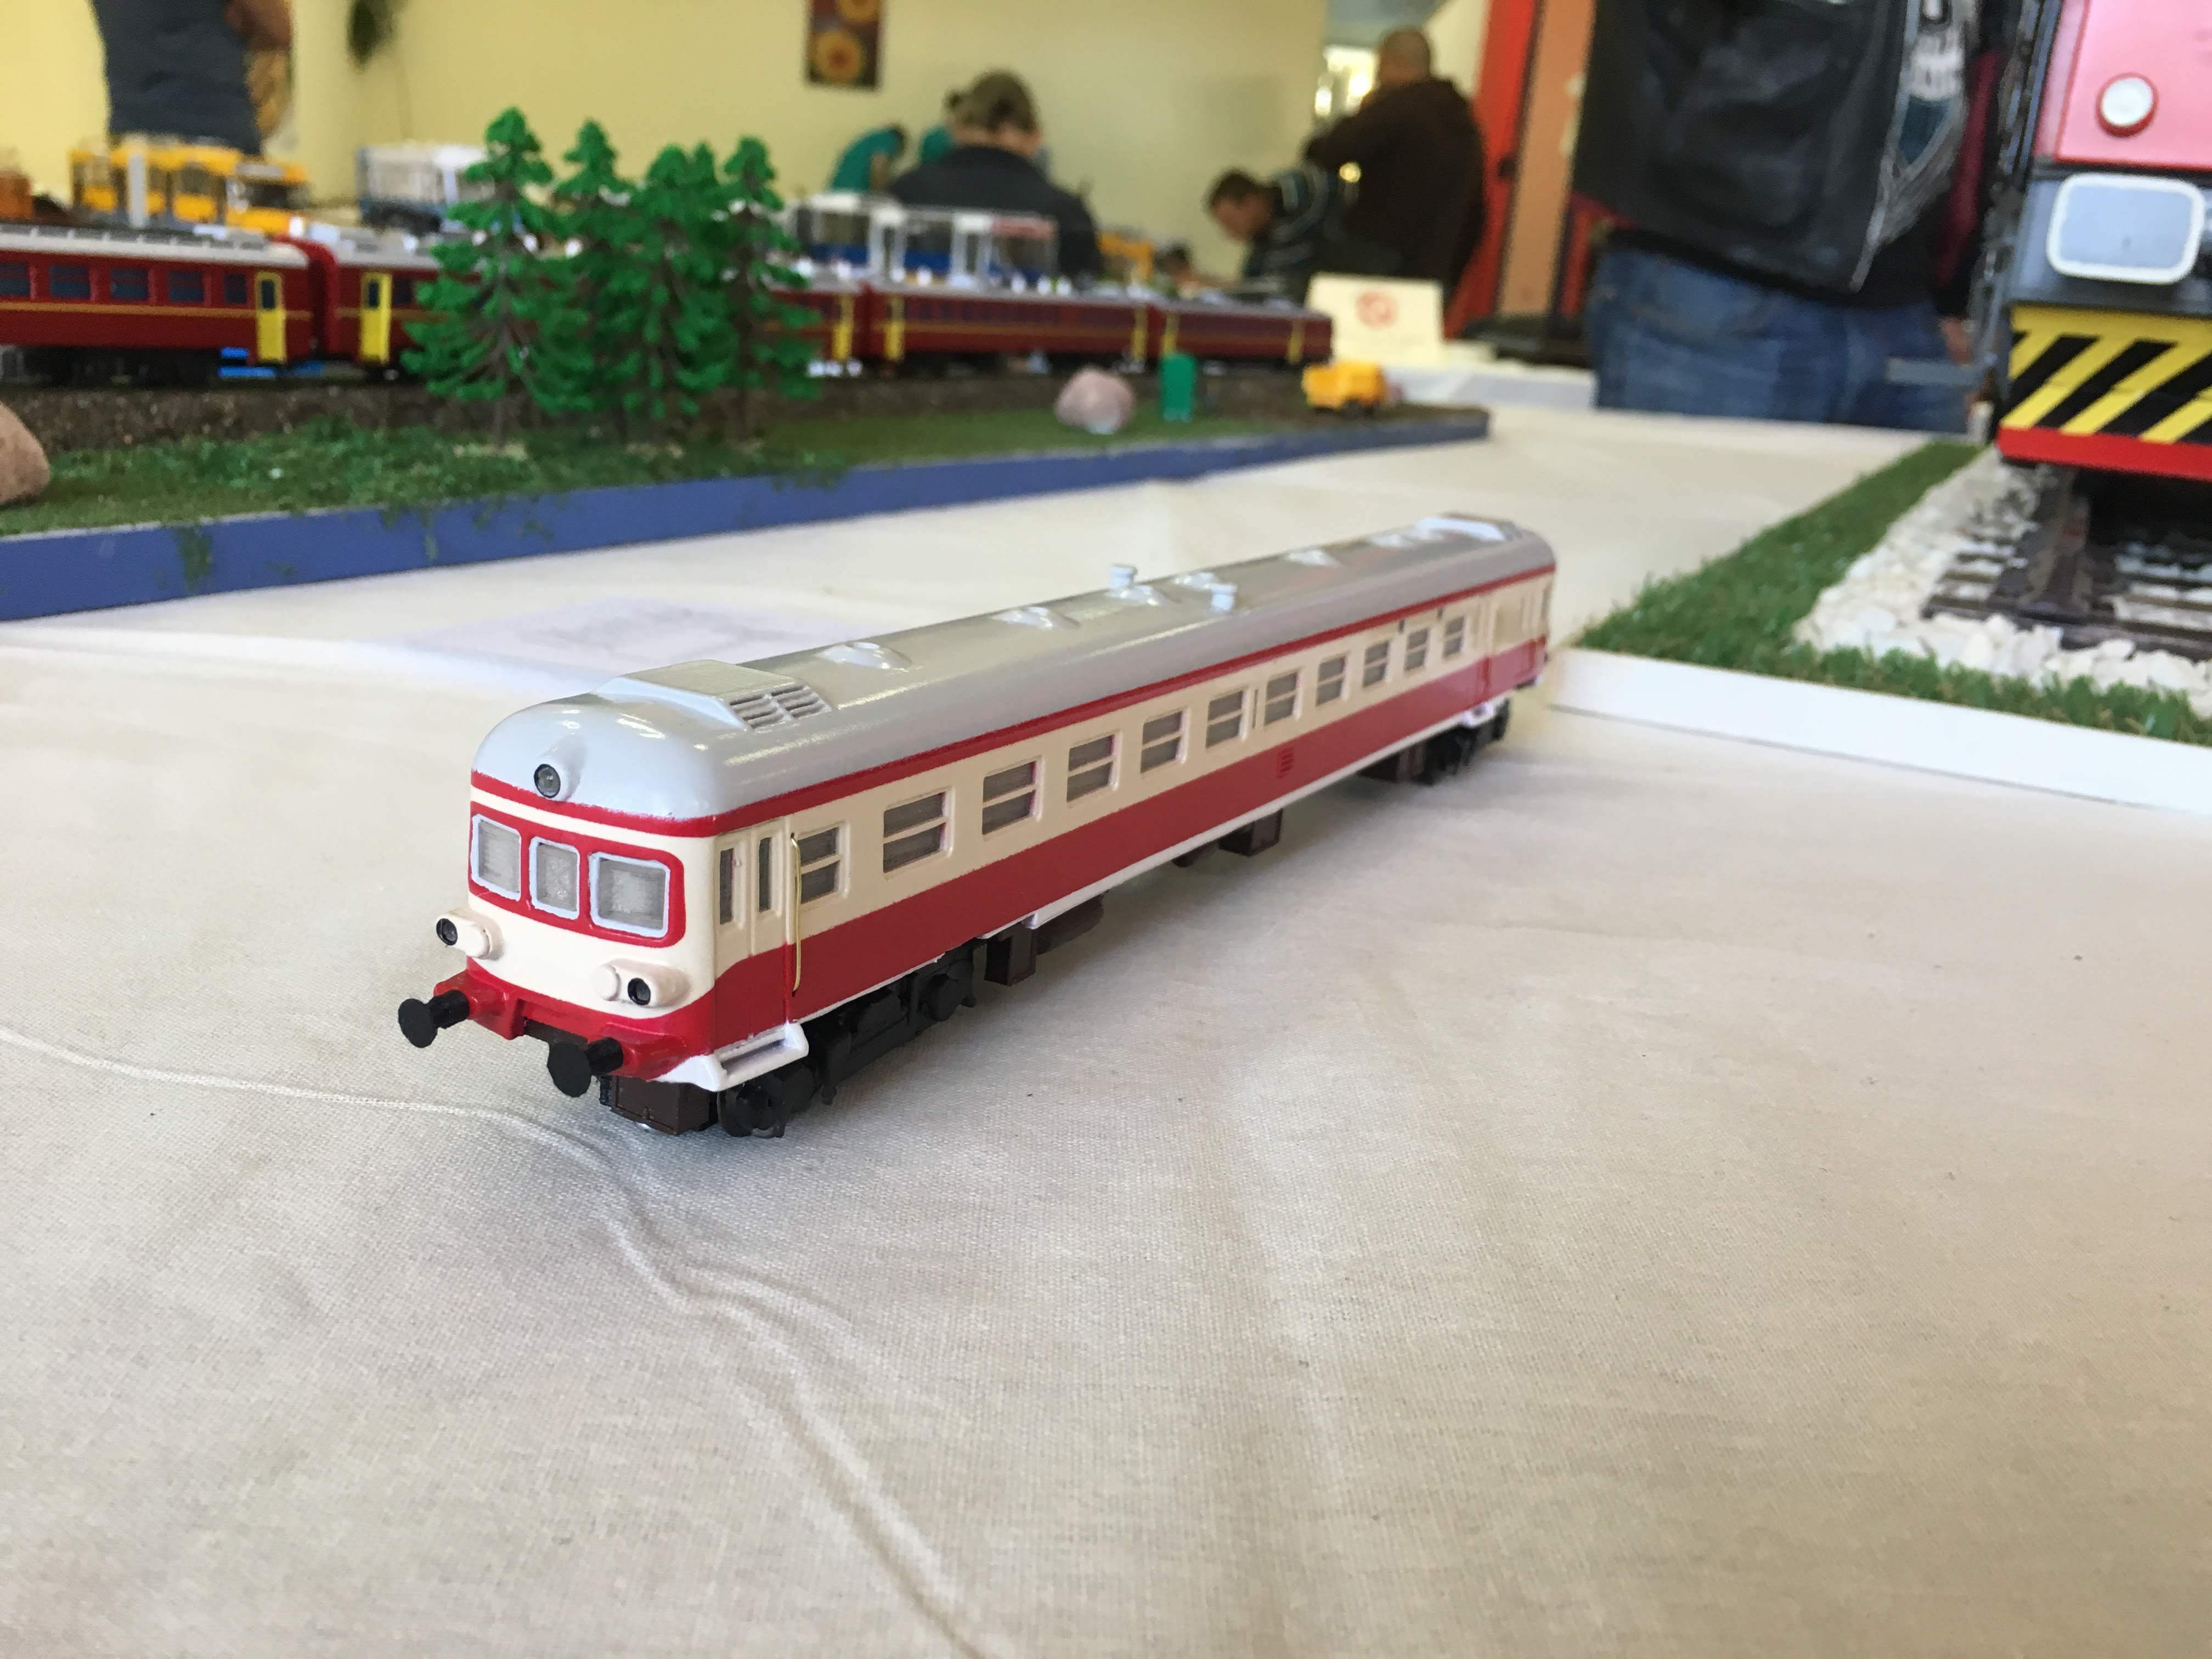 IMG_7464.jpg Download free STL file Bulgarian State Railways Series 19 / SGP Austrian in HO (1:87) scale • 3D printer object, nenchev